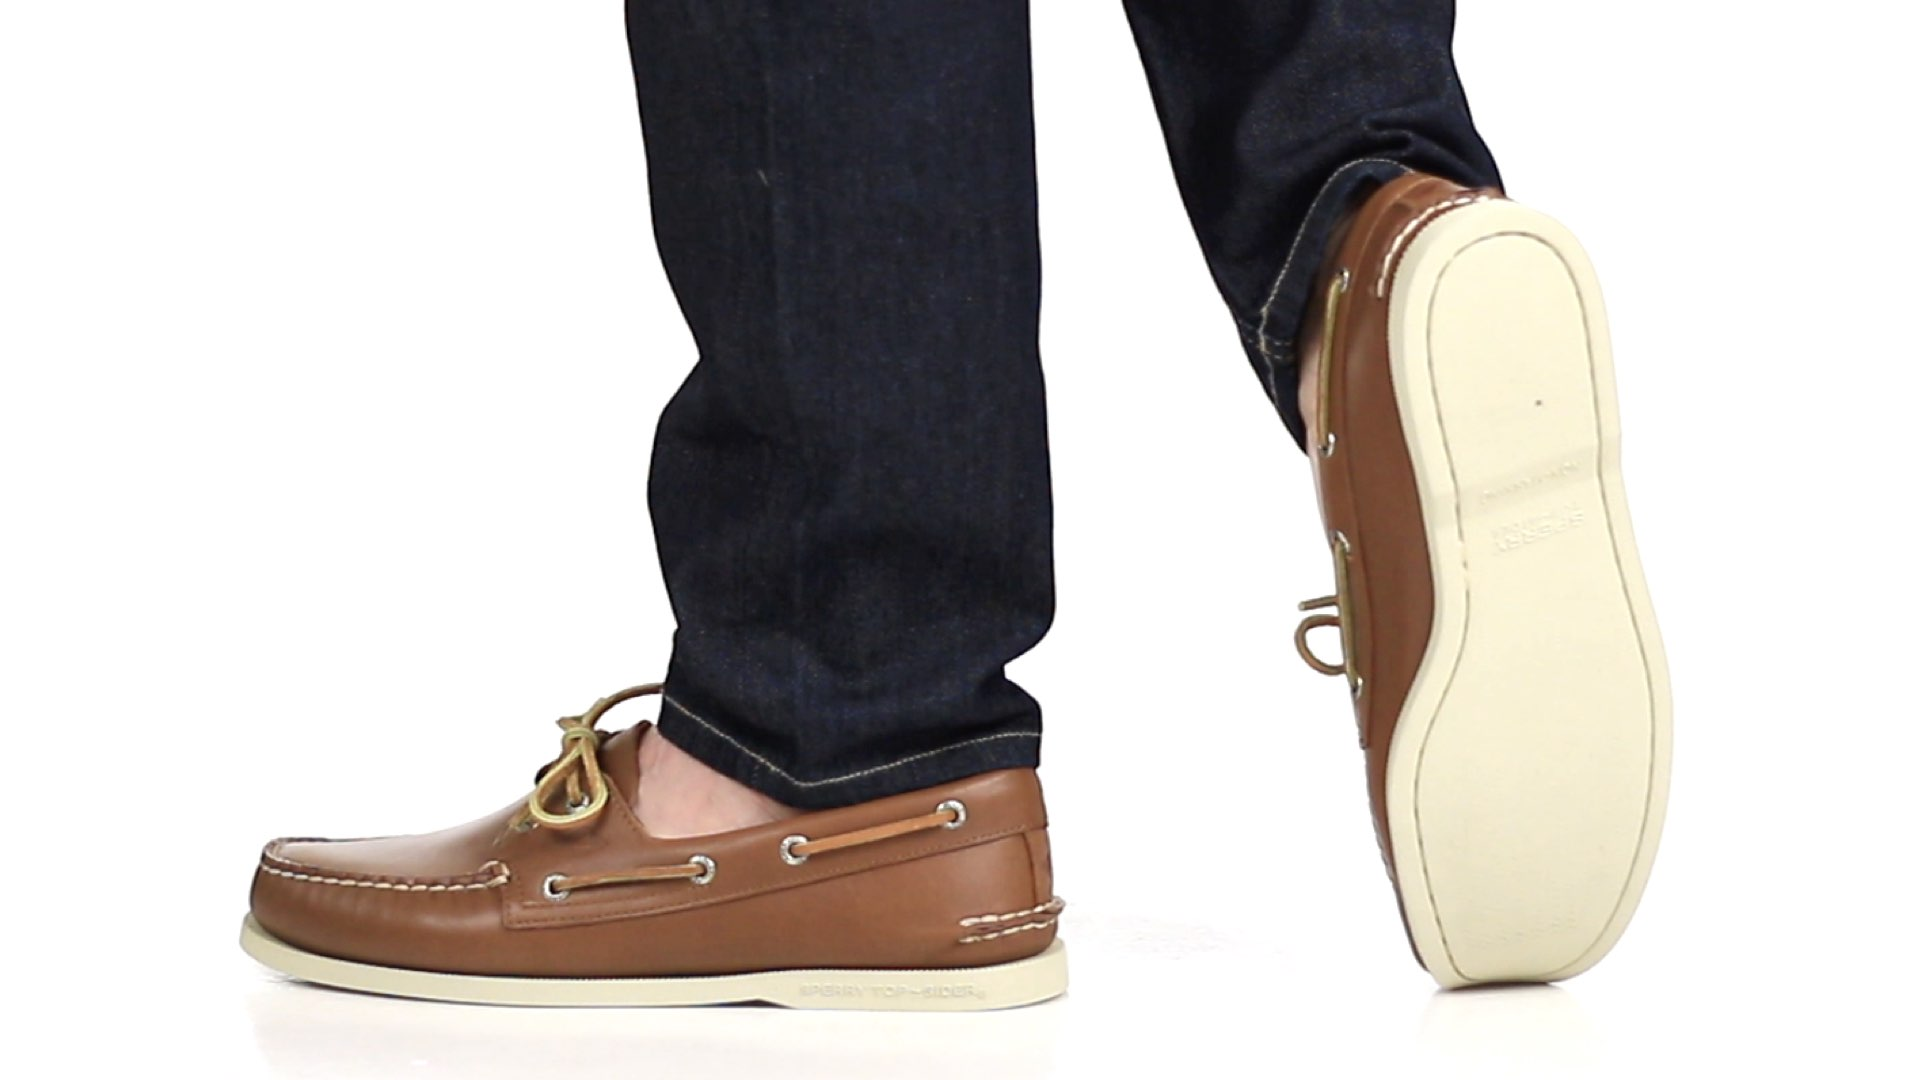 13 Shoes To Wear With Jeans The Ultimate Guide 2018 Update